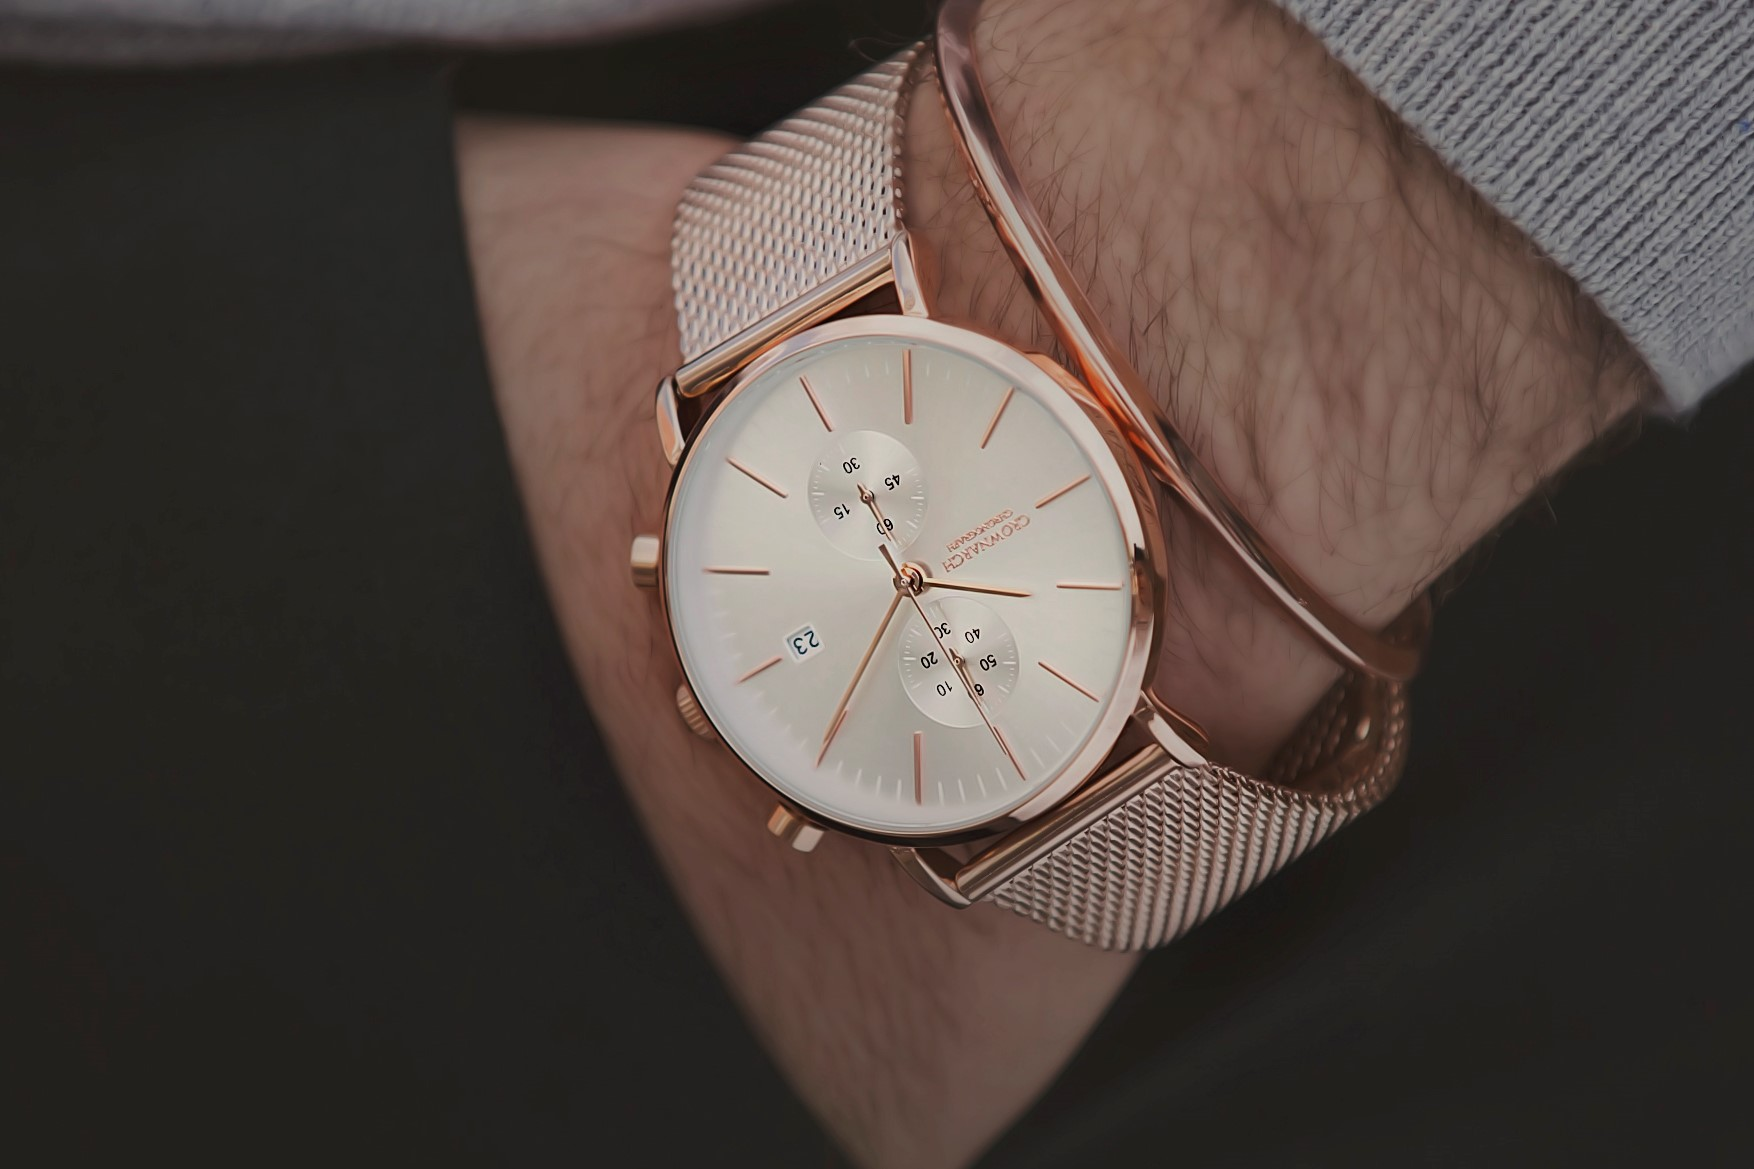 High Street Gent - Crownarch Watches